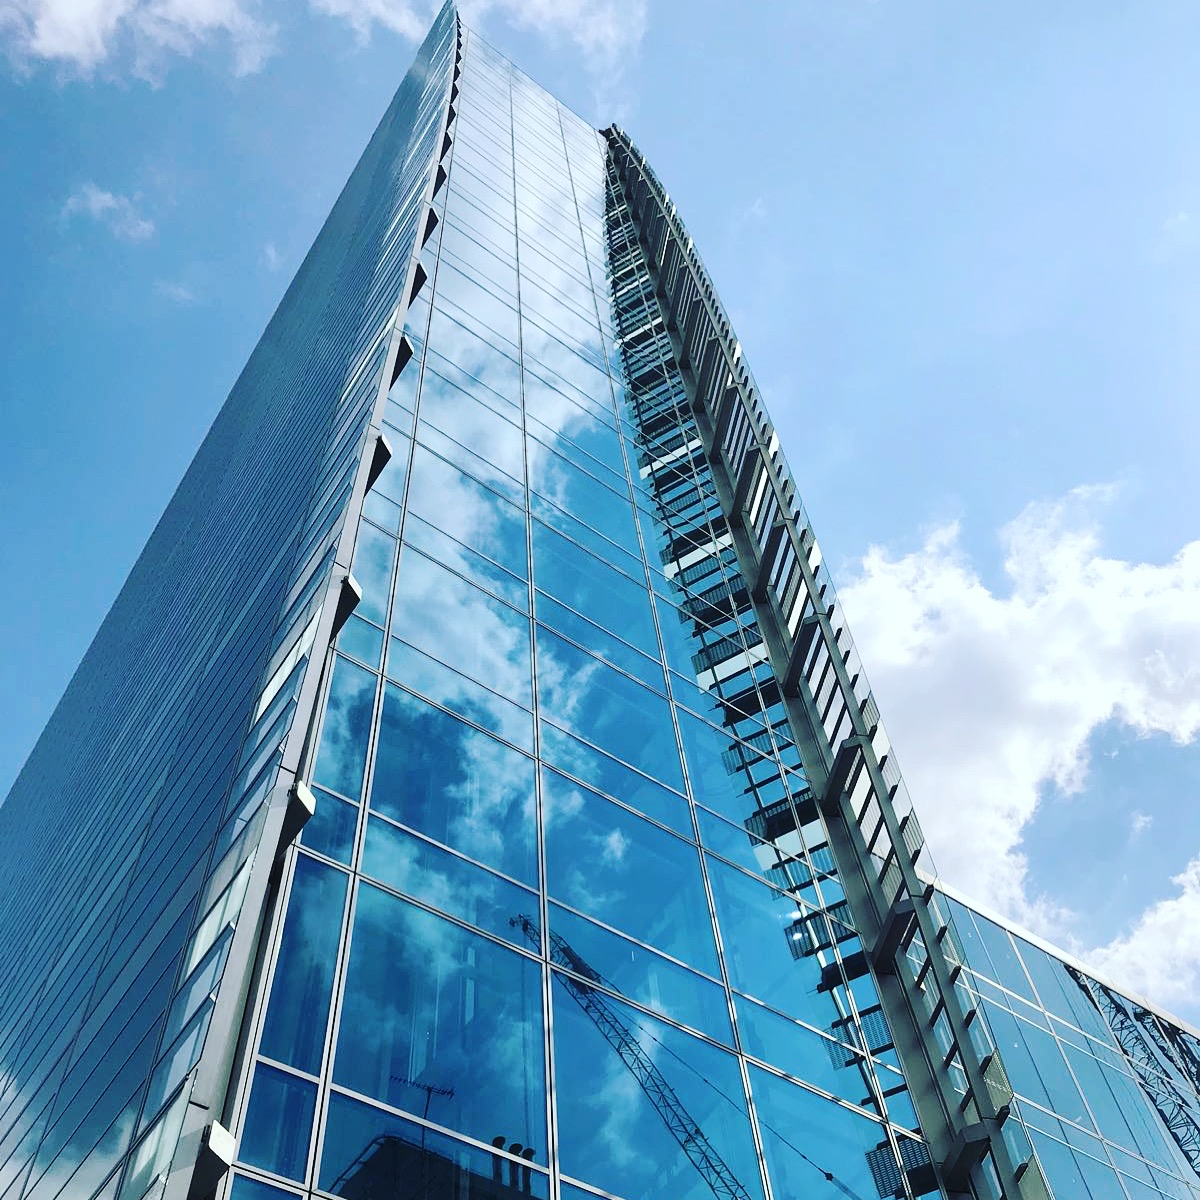 We scale the tallest buildings in the aim of cleaning perfection